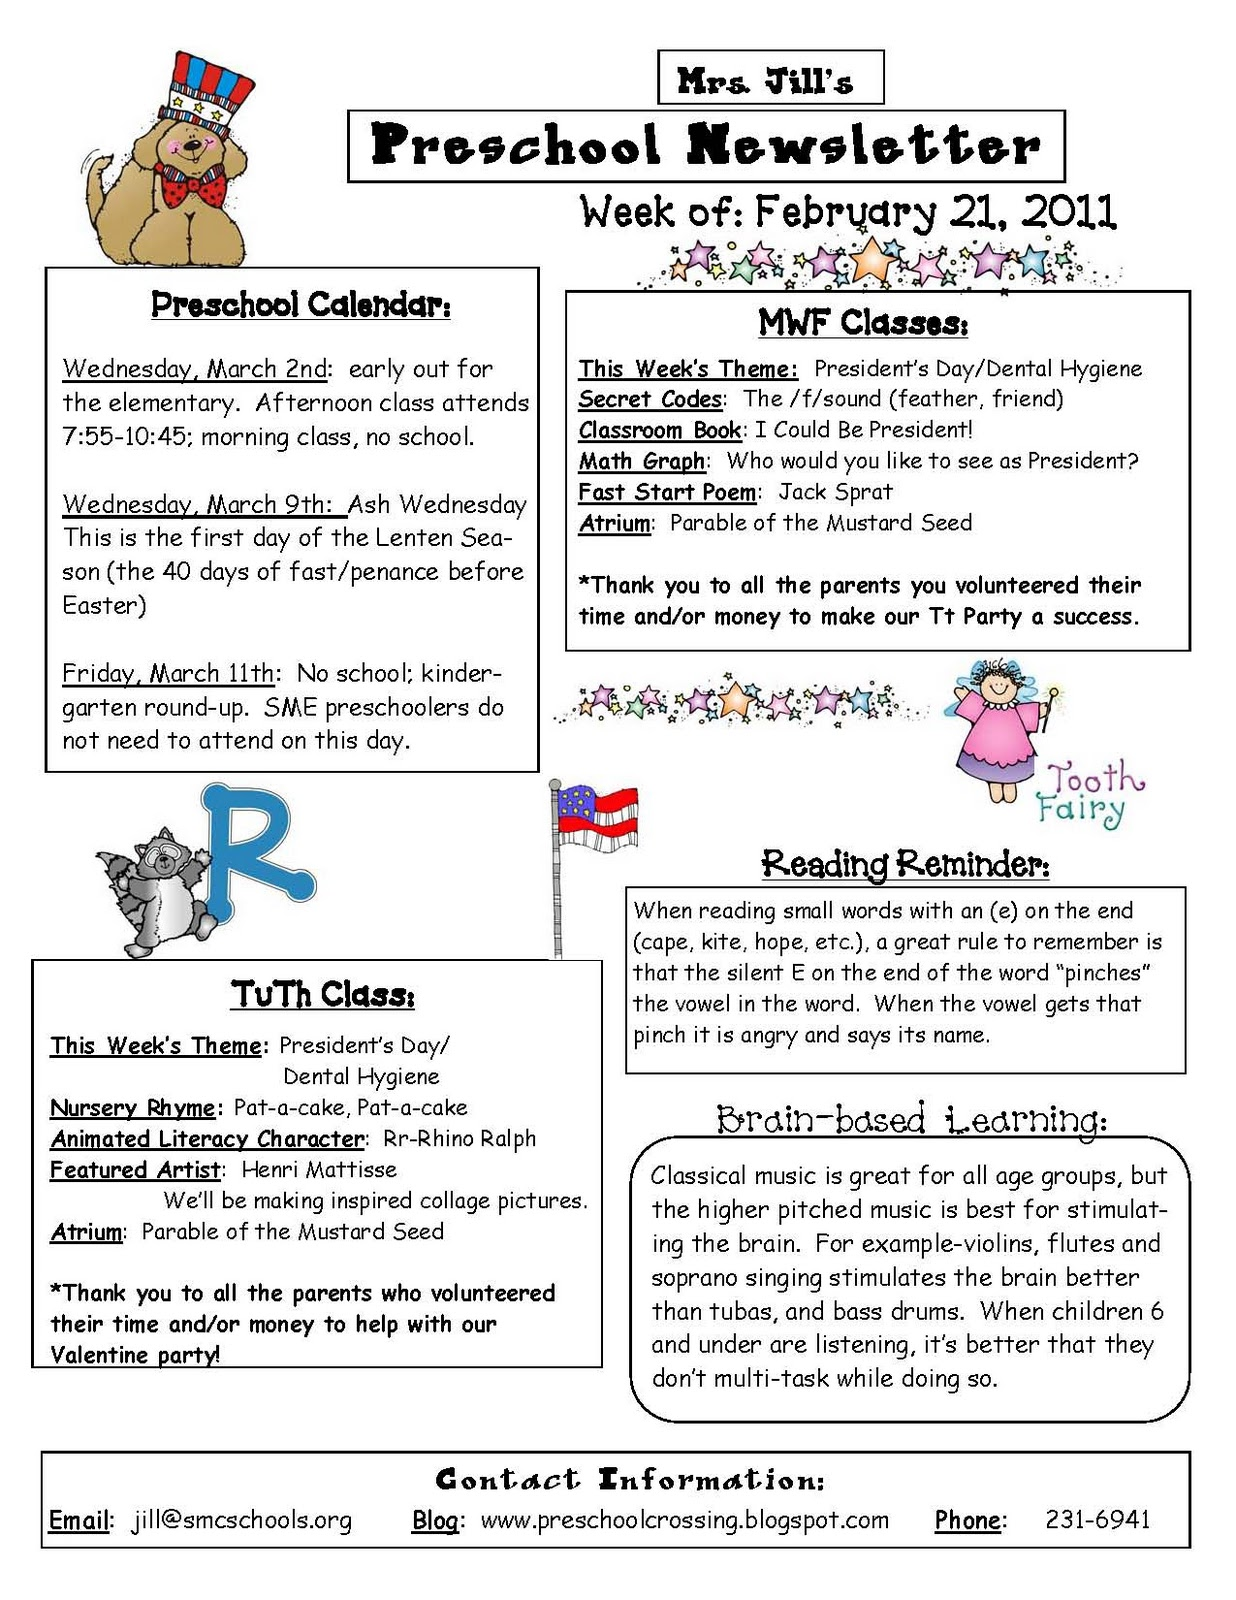 Preschool Crossing: Here is an example of my weekly newsletter